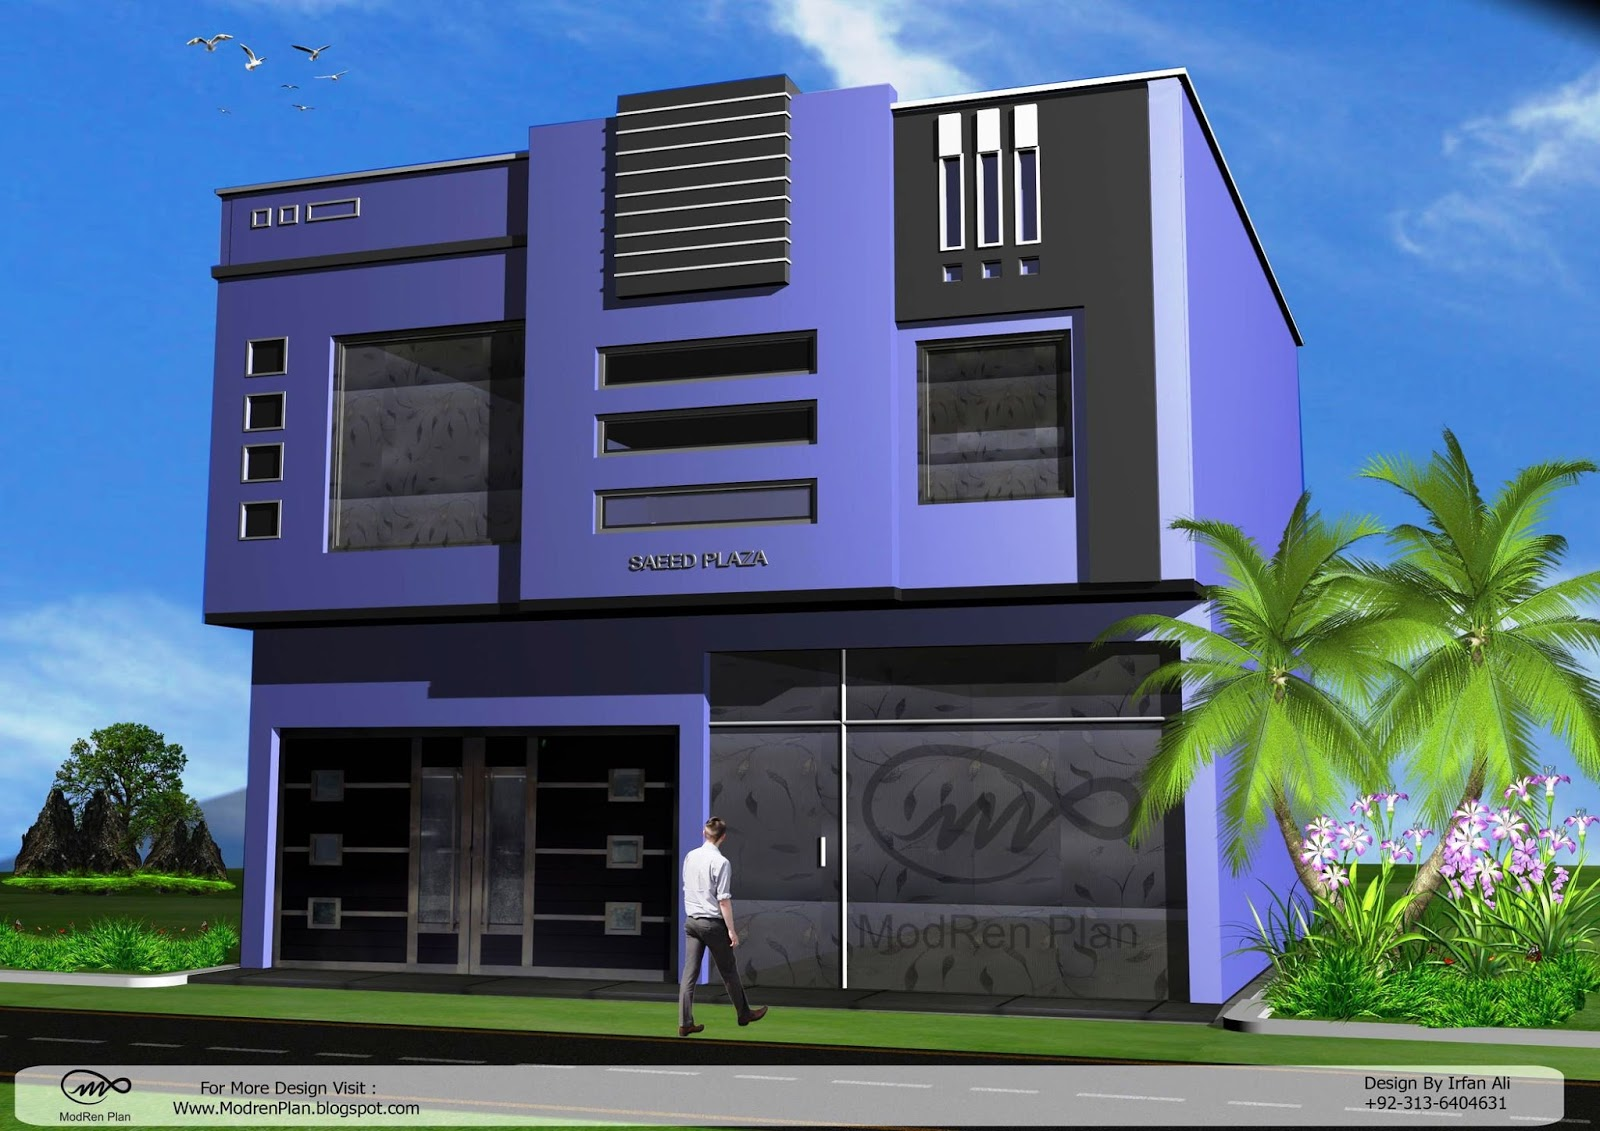 Front Elevation Of Commercial Building : Modern commercial building designs and plaza front elevation